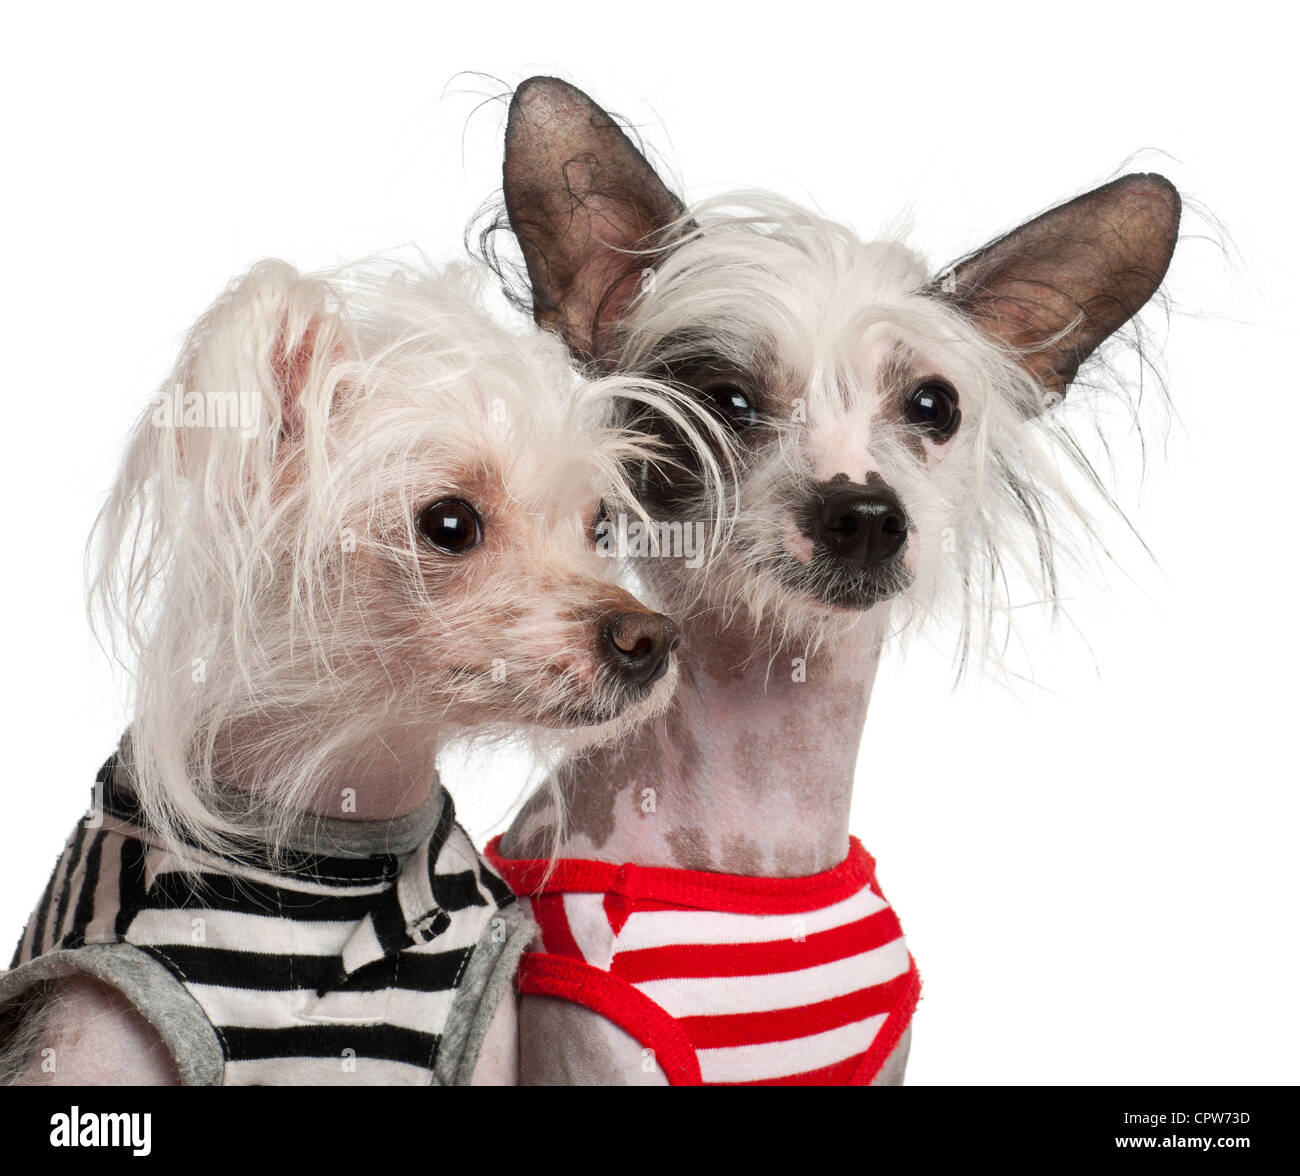 Chinese Crested Dog, 10 and 18 months old, in striped vests against white background - Stock Image